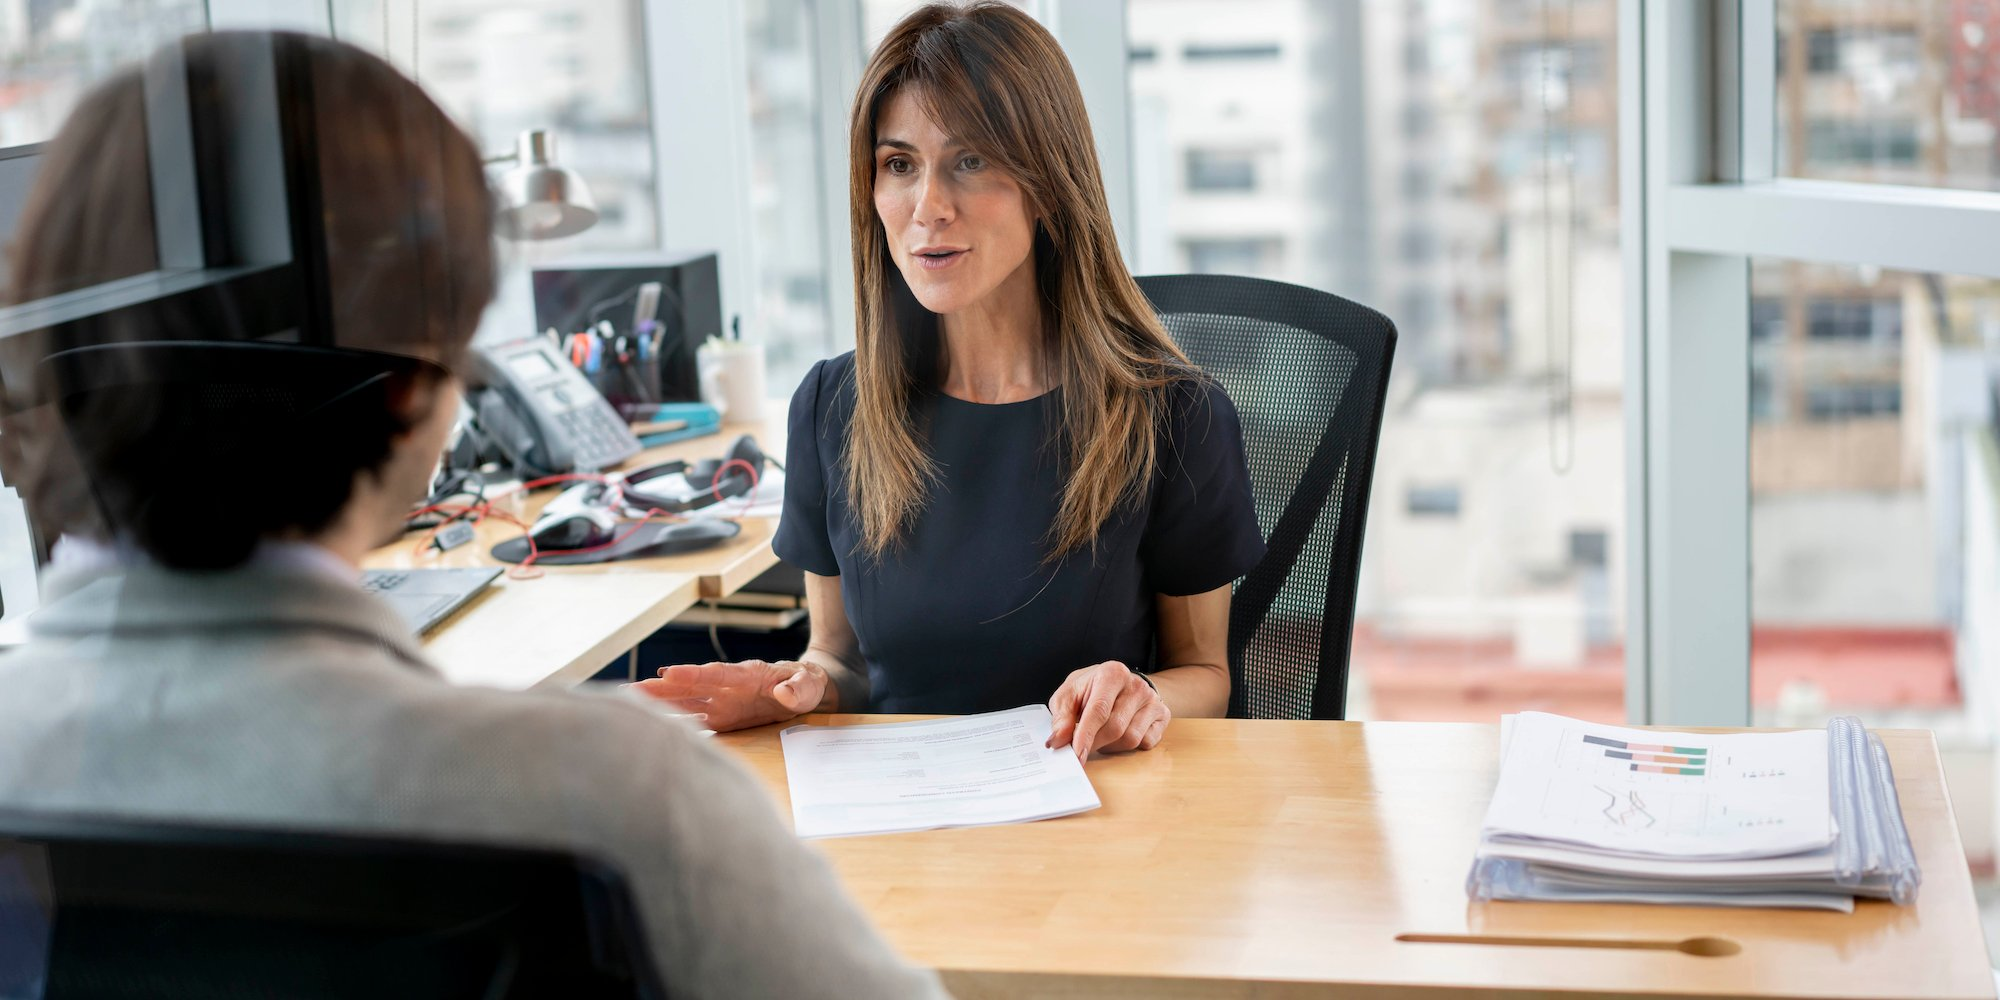 15 Tips for Conducting a Job Interview—So You Can Make the Right Hire